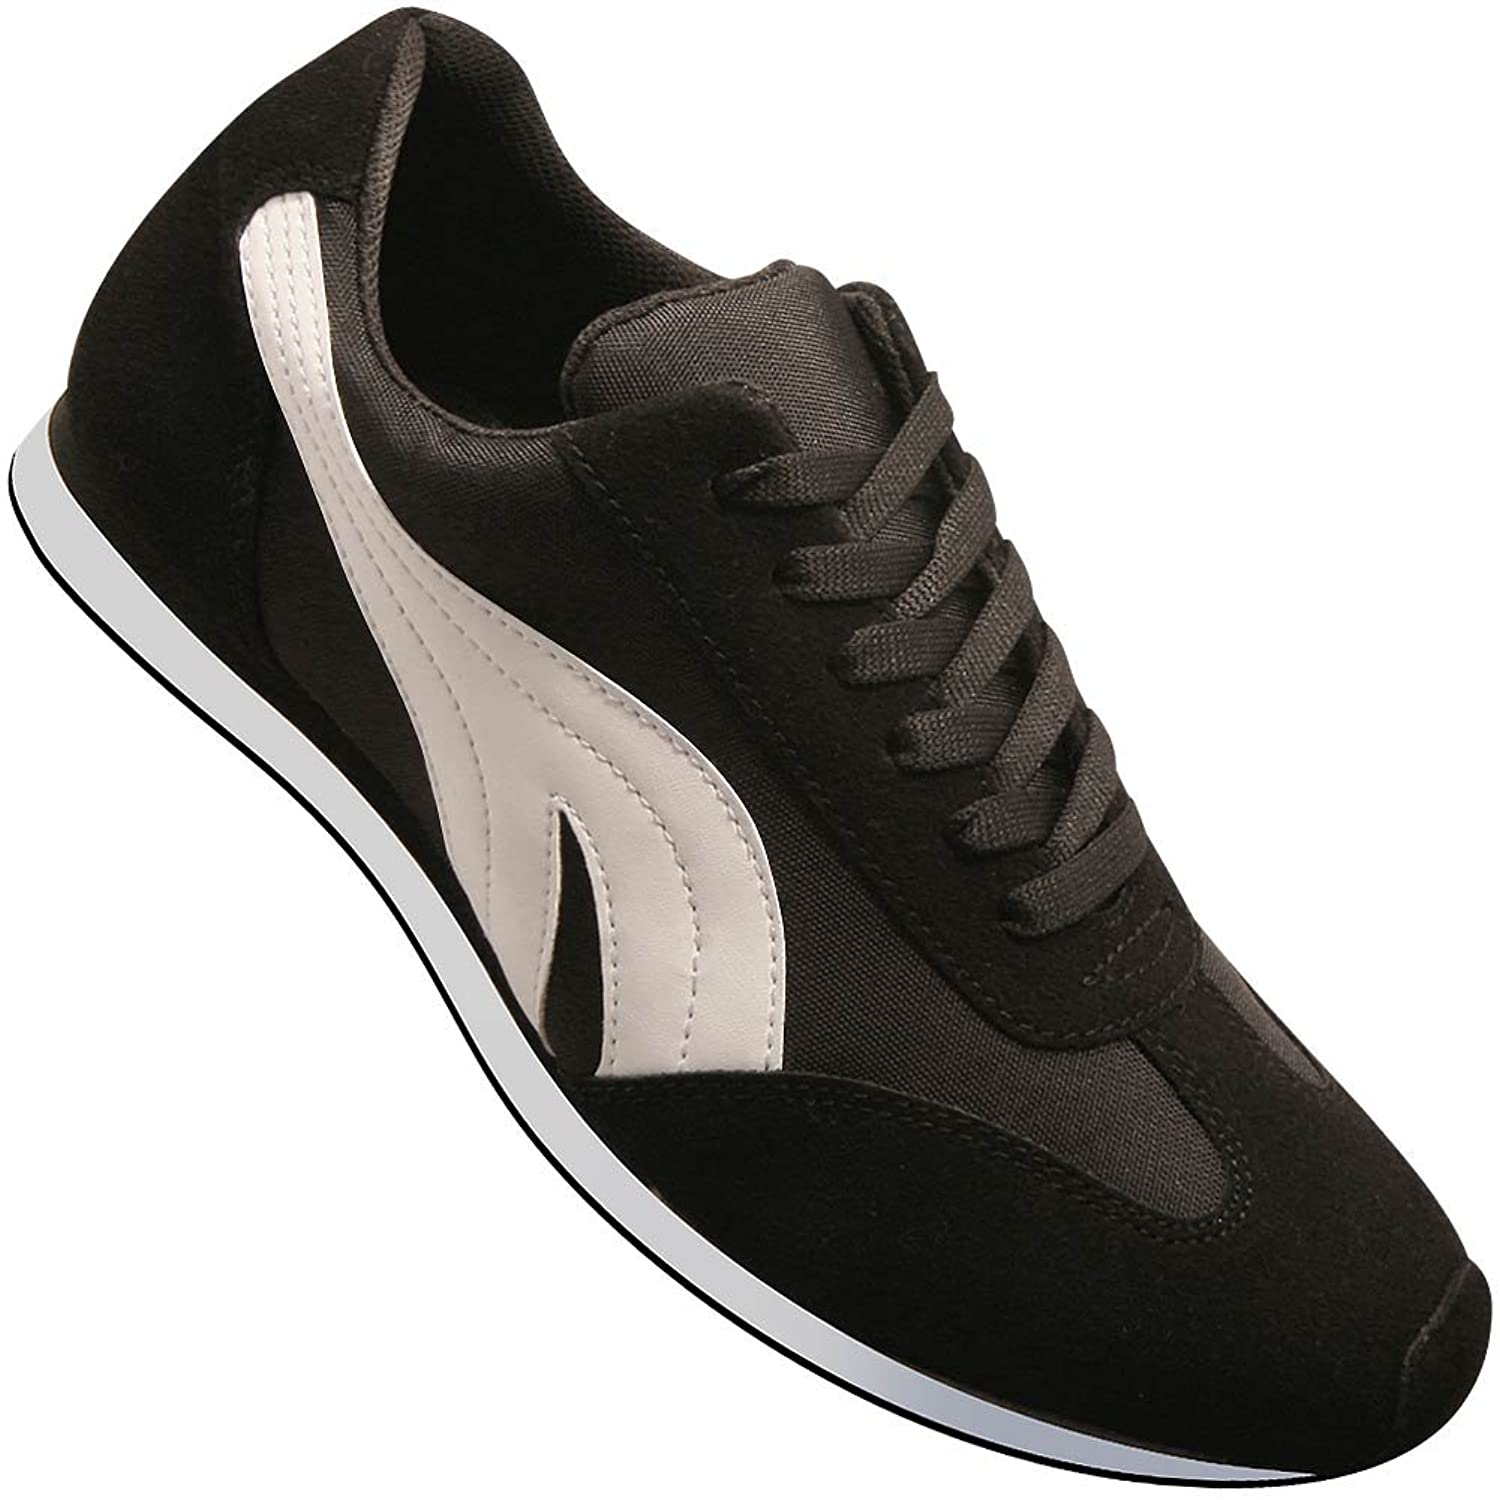 1960s Style Shoes Aris Allen Mens Retro Runner Dance Sneaker in Black and White $59.95 AT vintagedancer.com